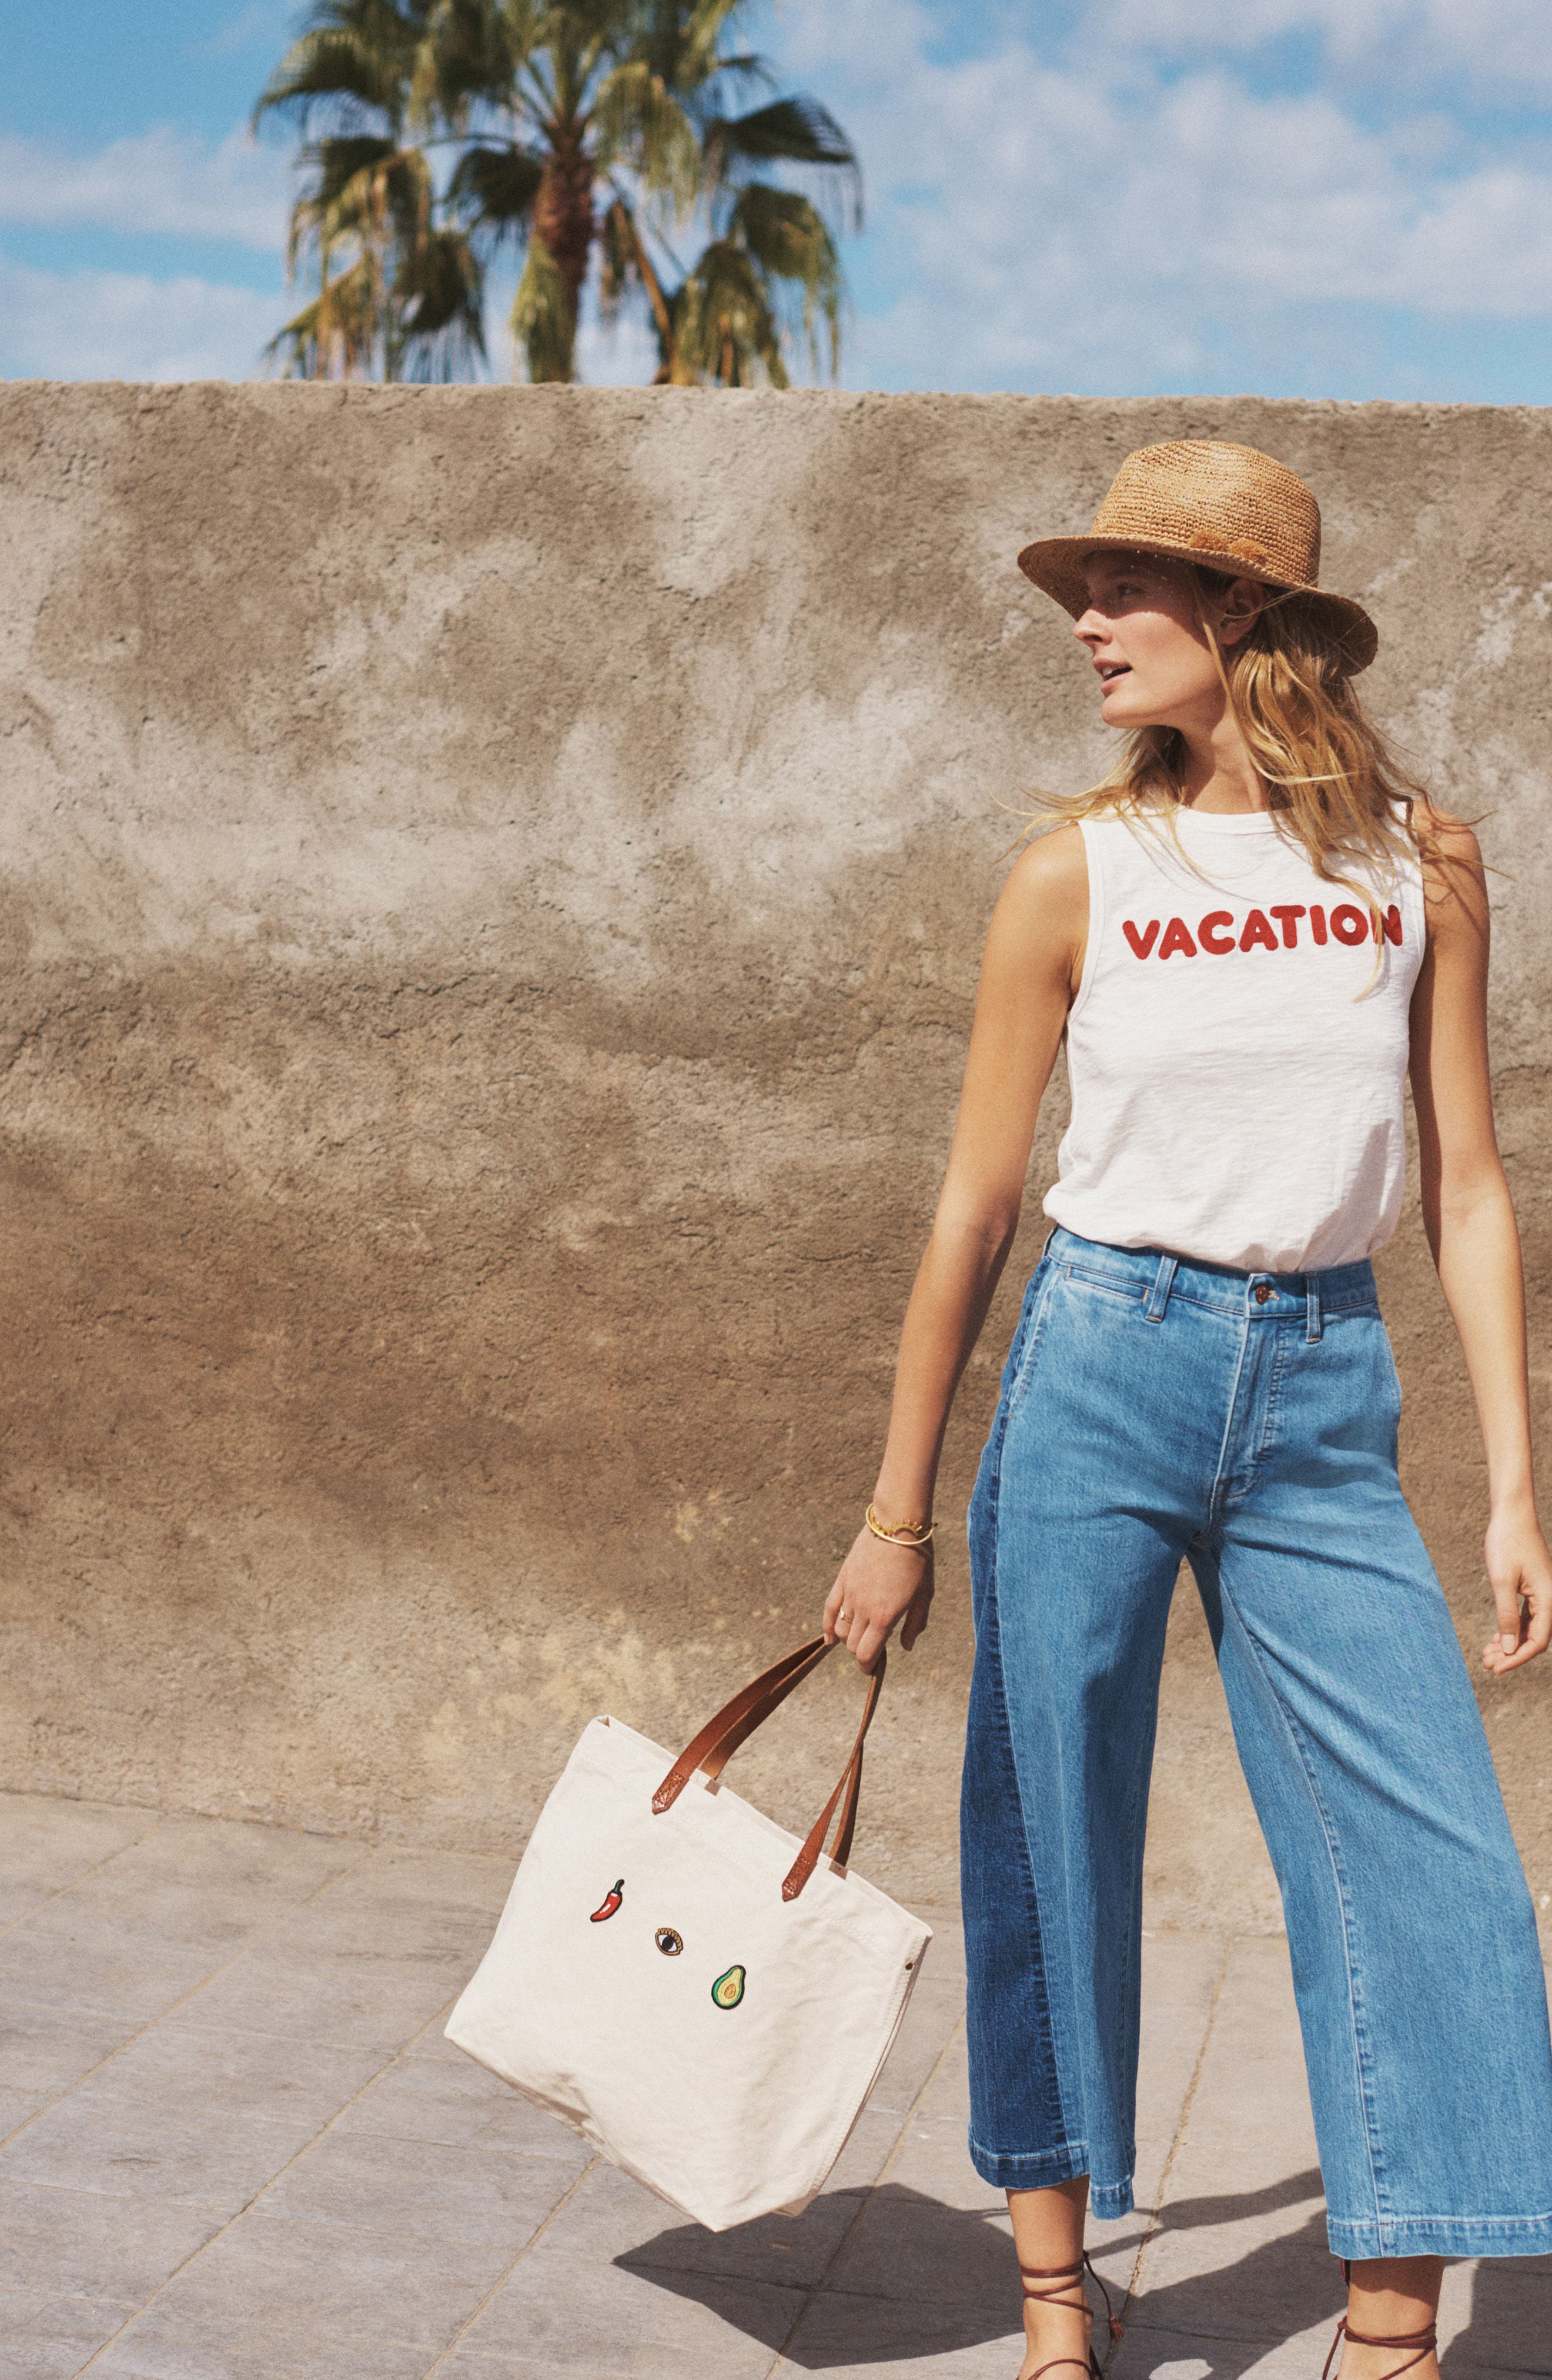 Alternate Image 2  - Madewell Vacation Embroidered Tank